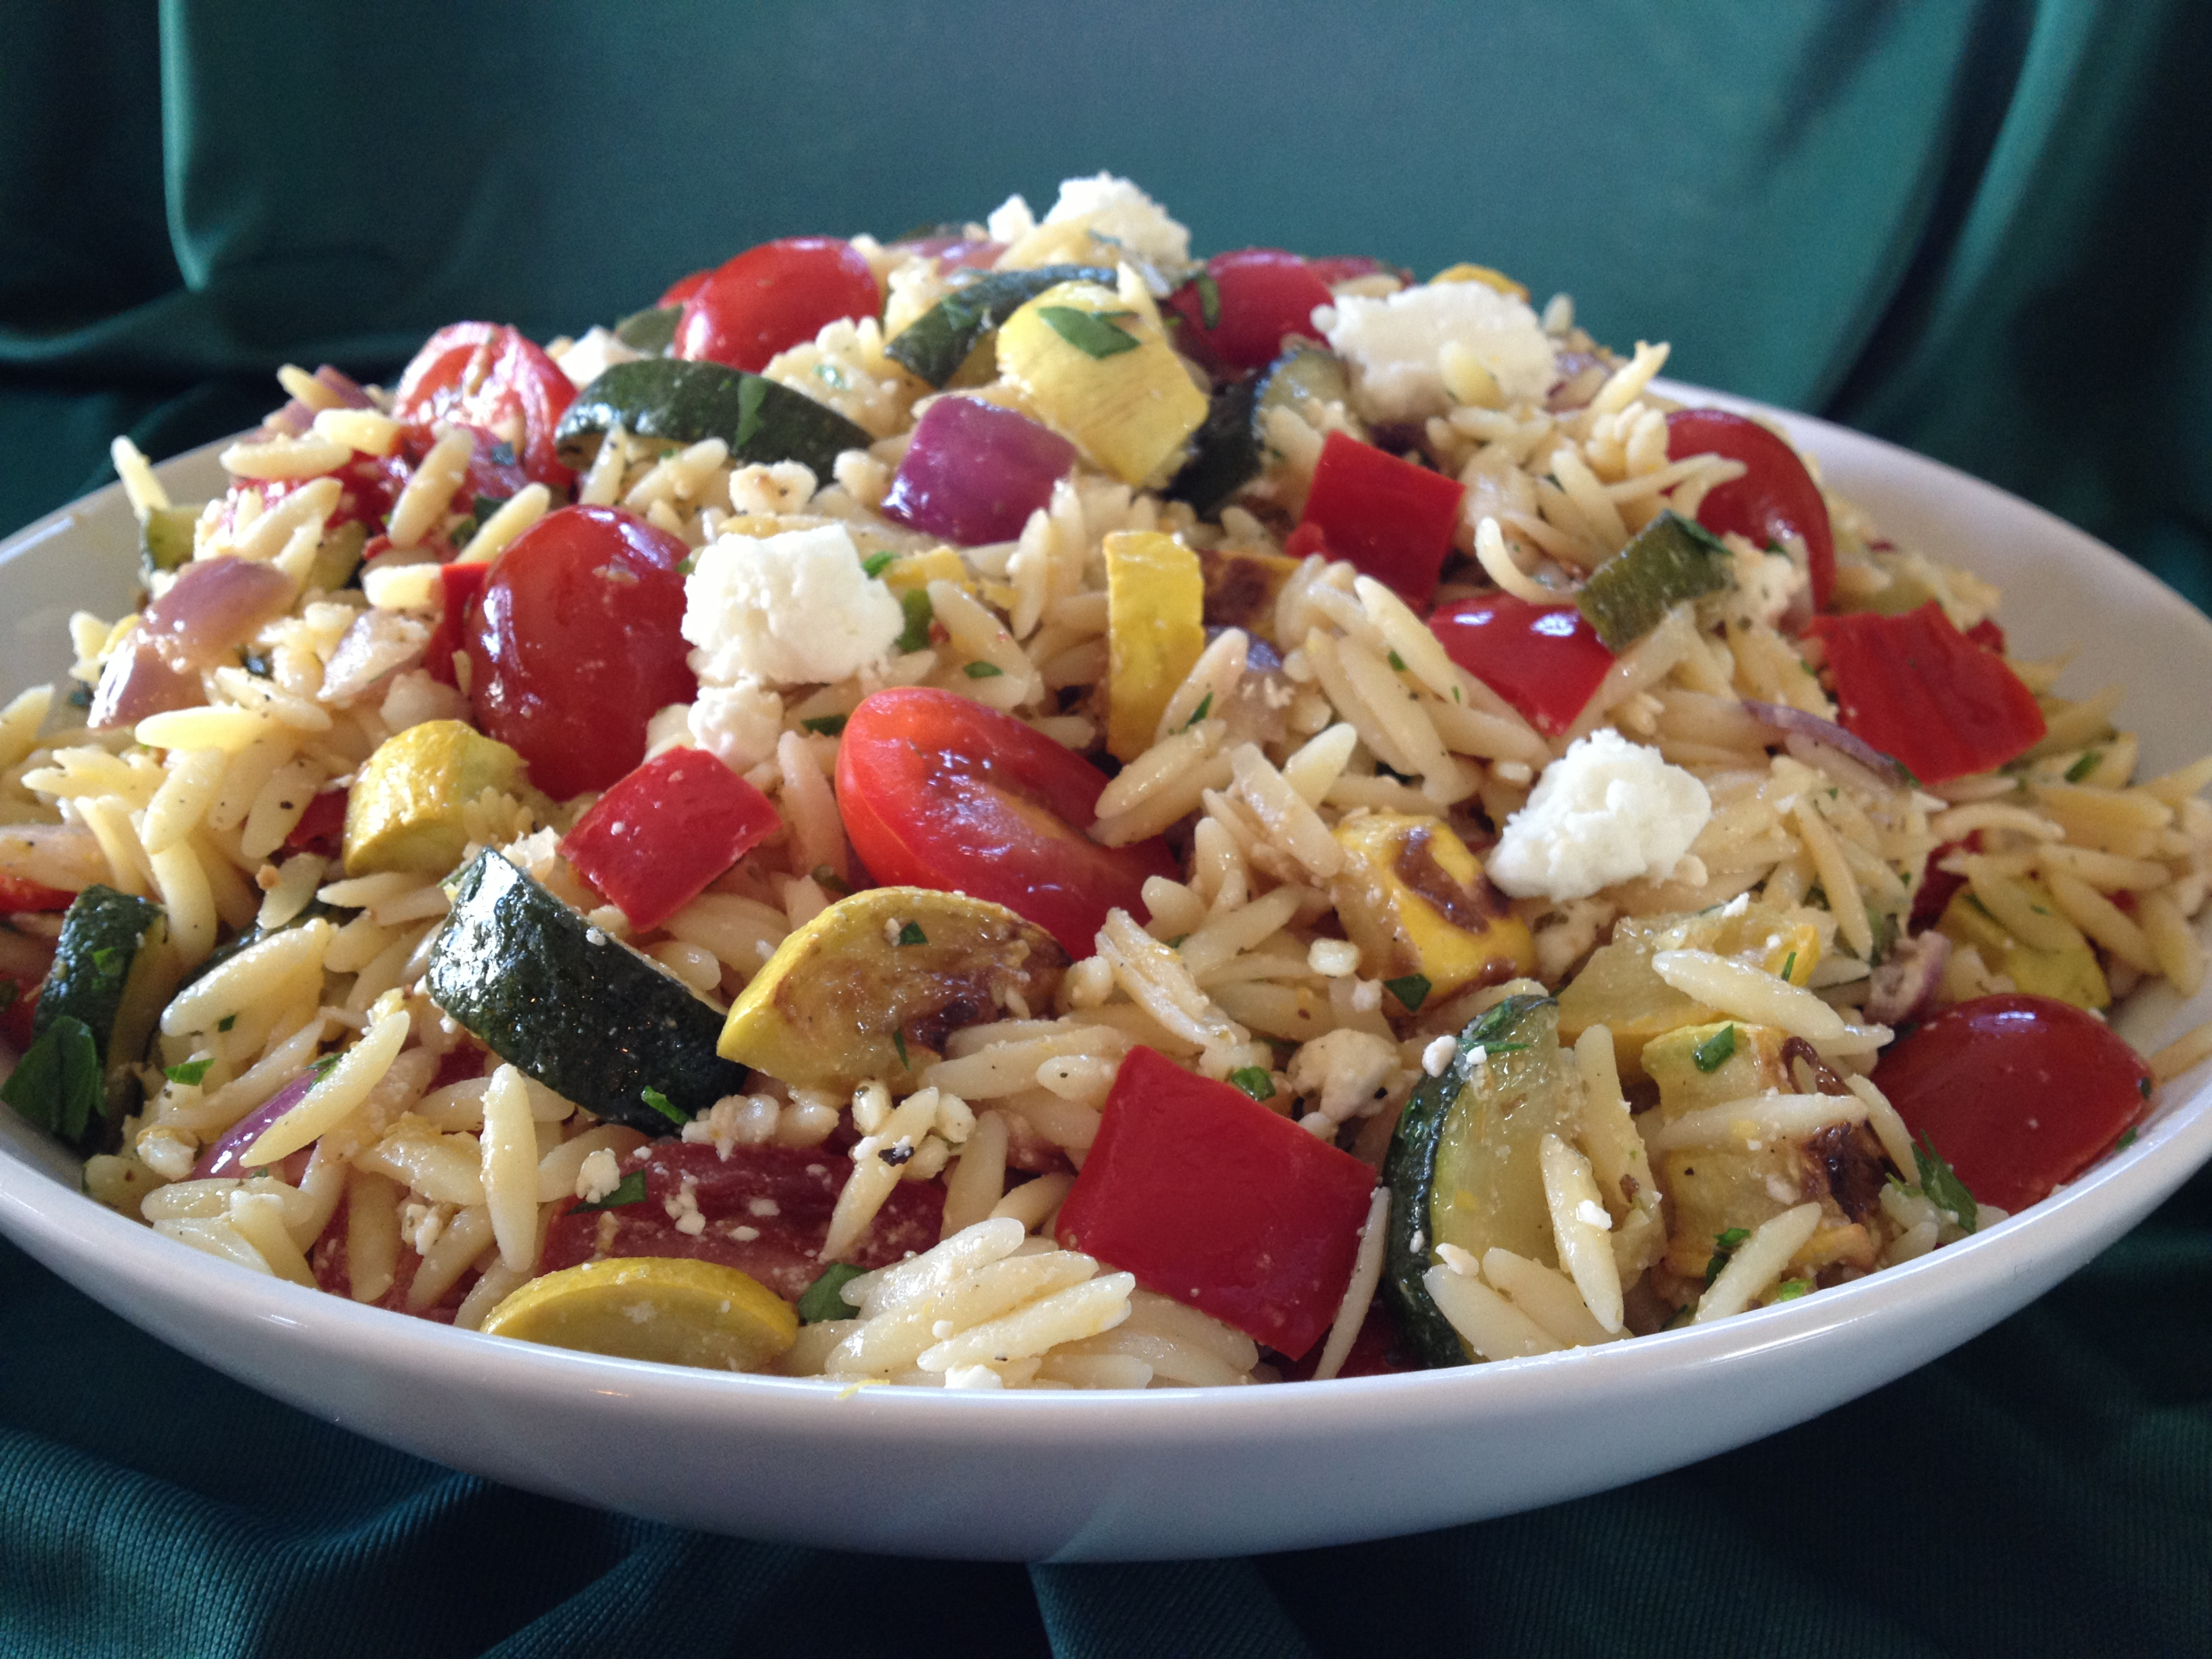 Roasted Rainbow Vegetables with Orzo & Feta combines an array of vegetable colors and flavors with pasta and a lehe perfect side dish bursting with flavor or top with cooked chicken, beef or shrimp for a meal in a bowl! easy recipe | pasta | orzo | side dish | cheese | mixed vegetables | feta | dinner | brunch | #swirlsofflavor